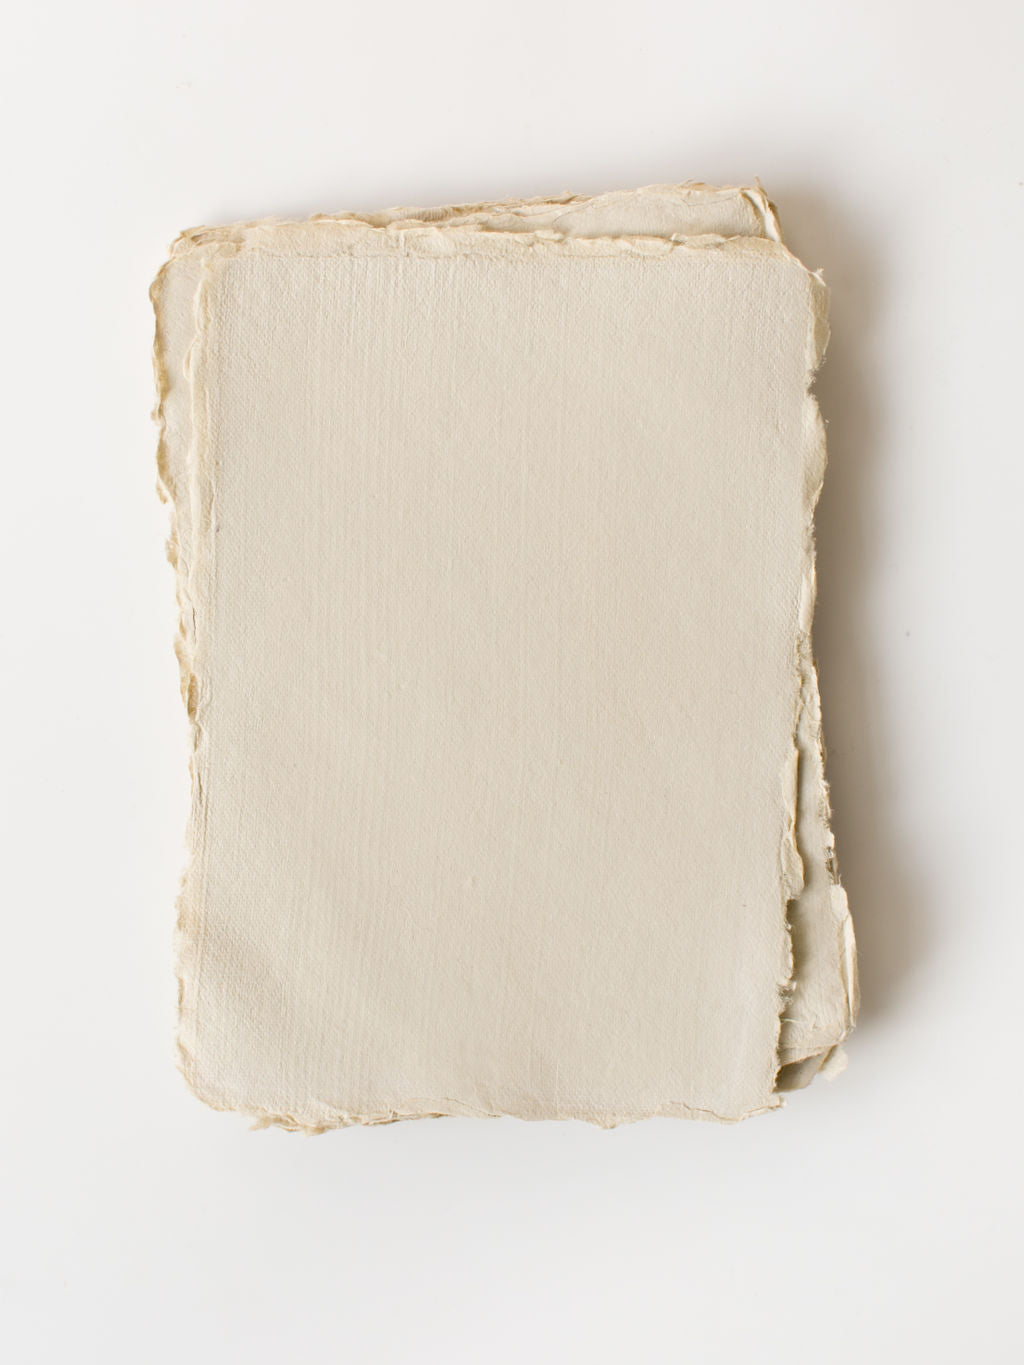 Handmade Paper in Wheat